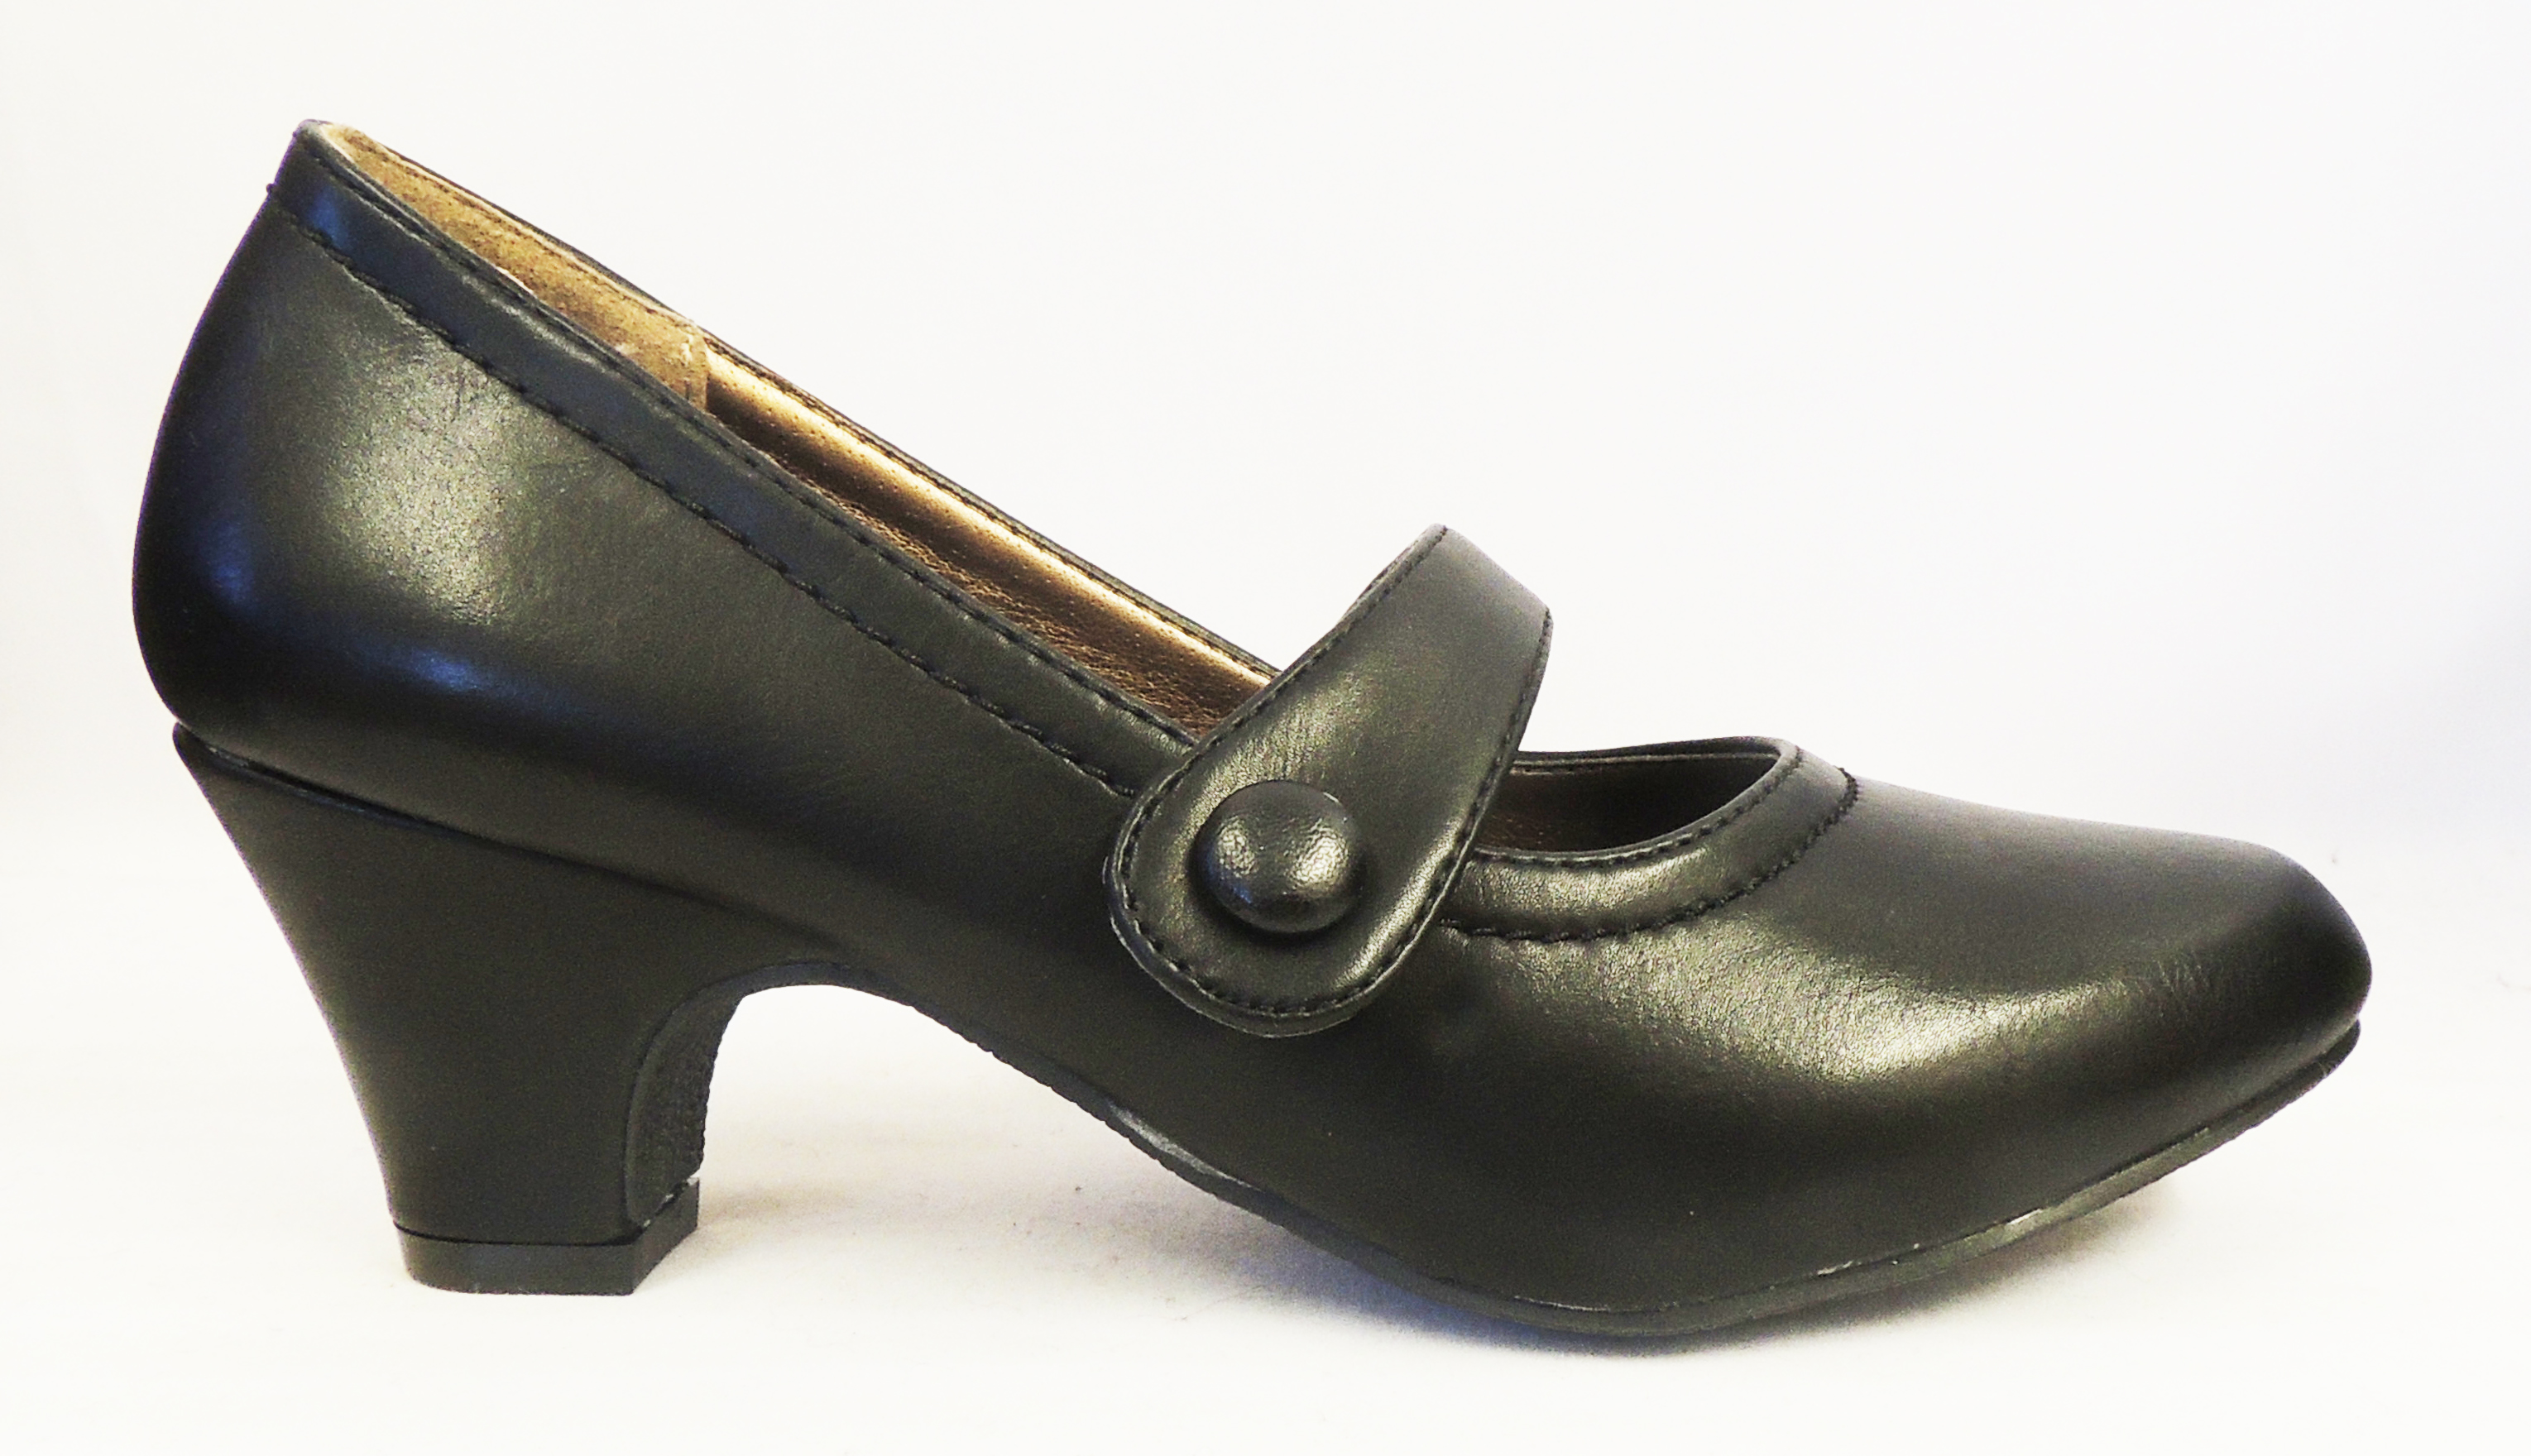 New-Vintage-style-1930-039-s-1940s-WW2-Wartime-Black-Mid-Heel-Mary-Jane-Court-Shoes